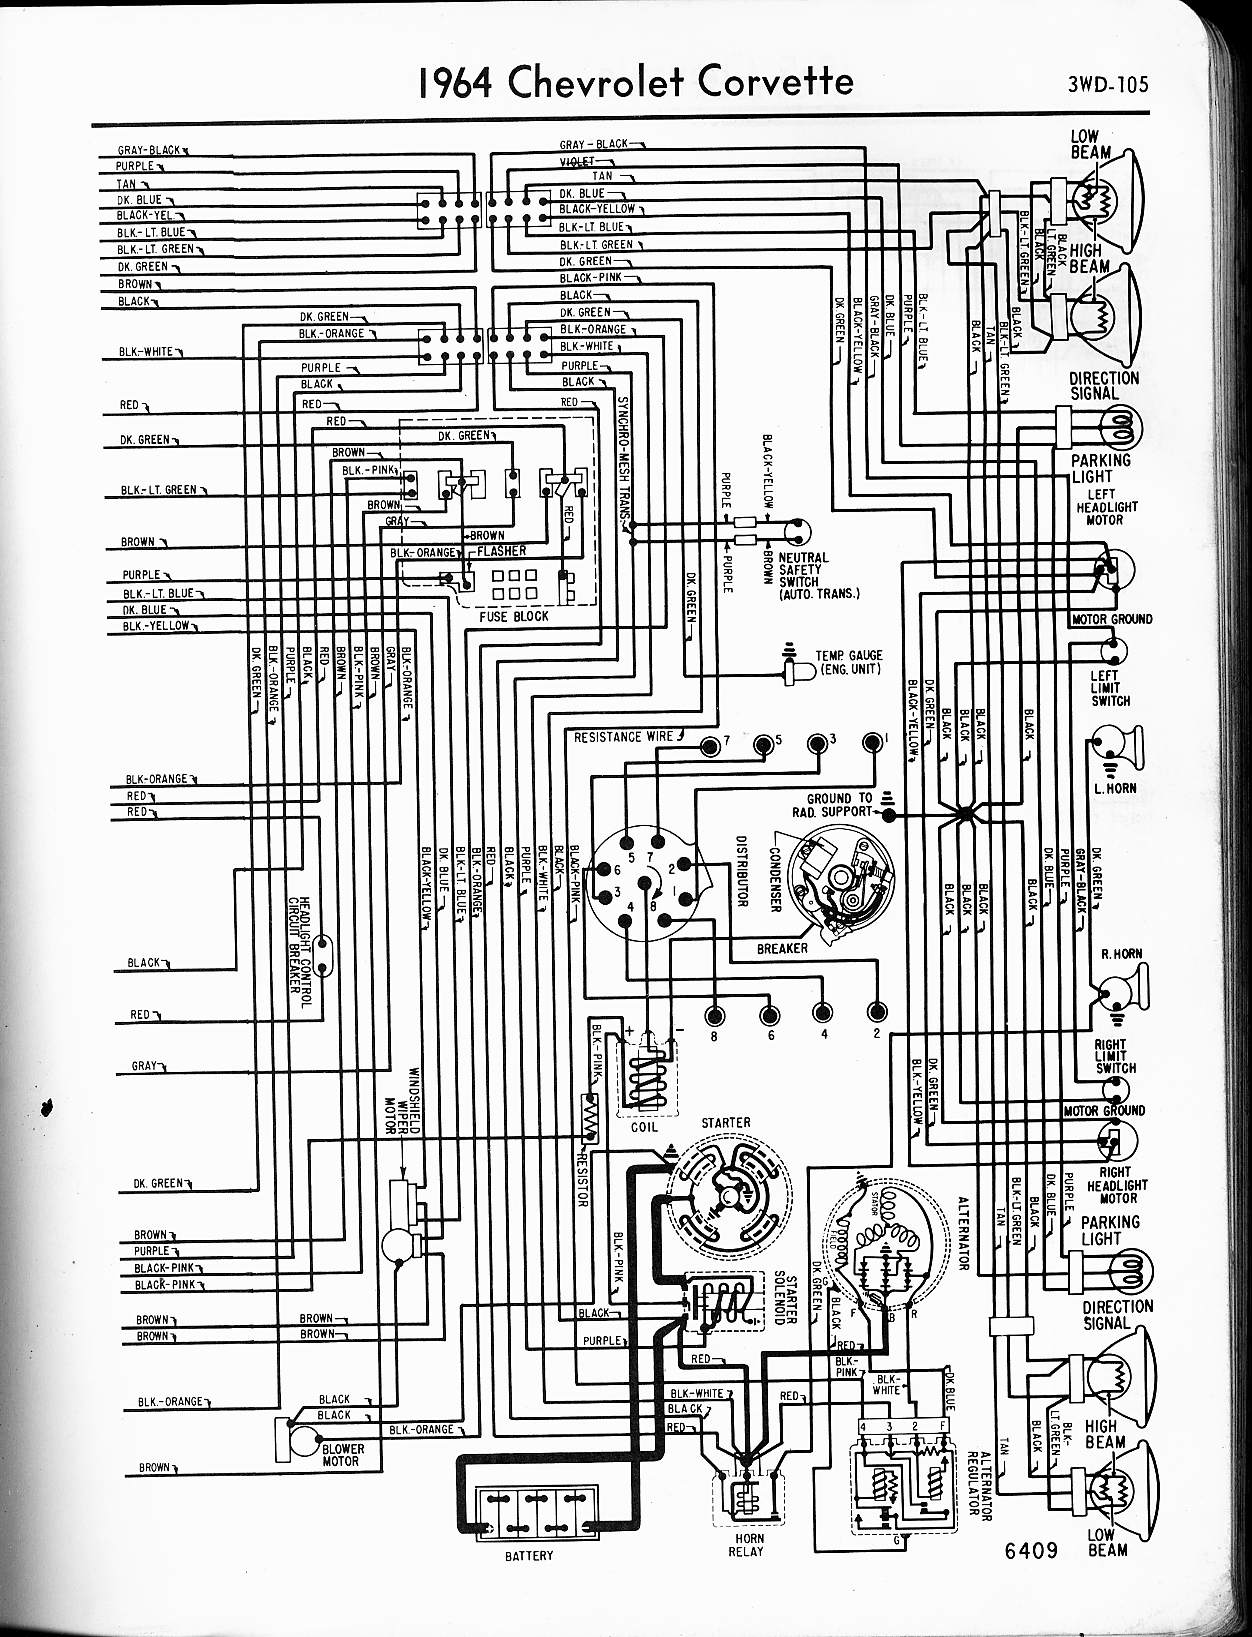 hight resolution of 62 chevy corvette wiring diagram expert schematics diagram rh atcobennettrecoveries com 1980 corvette battery wiring diagram